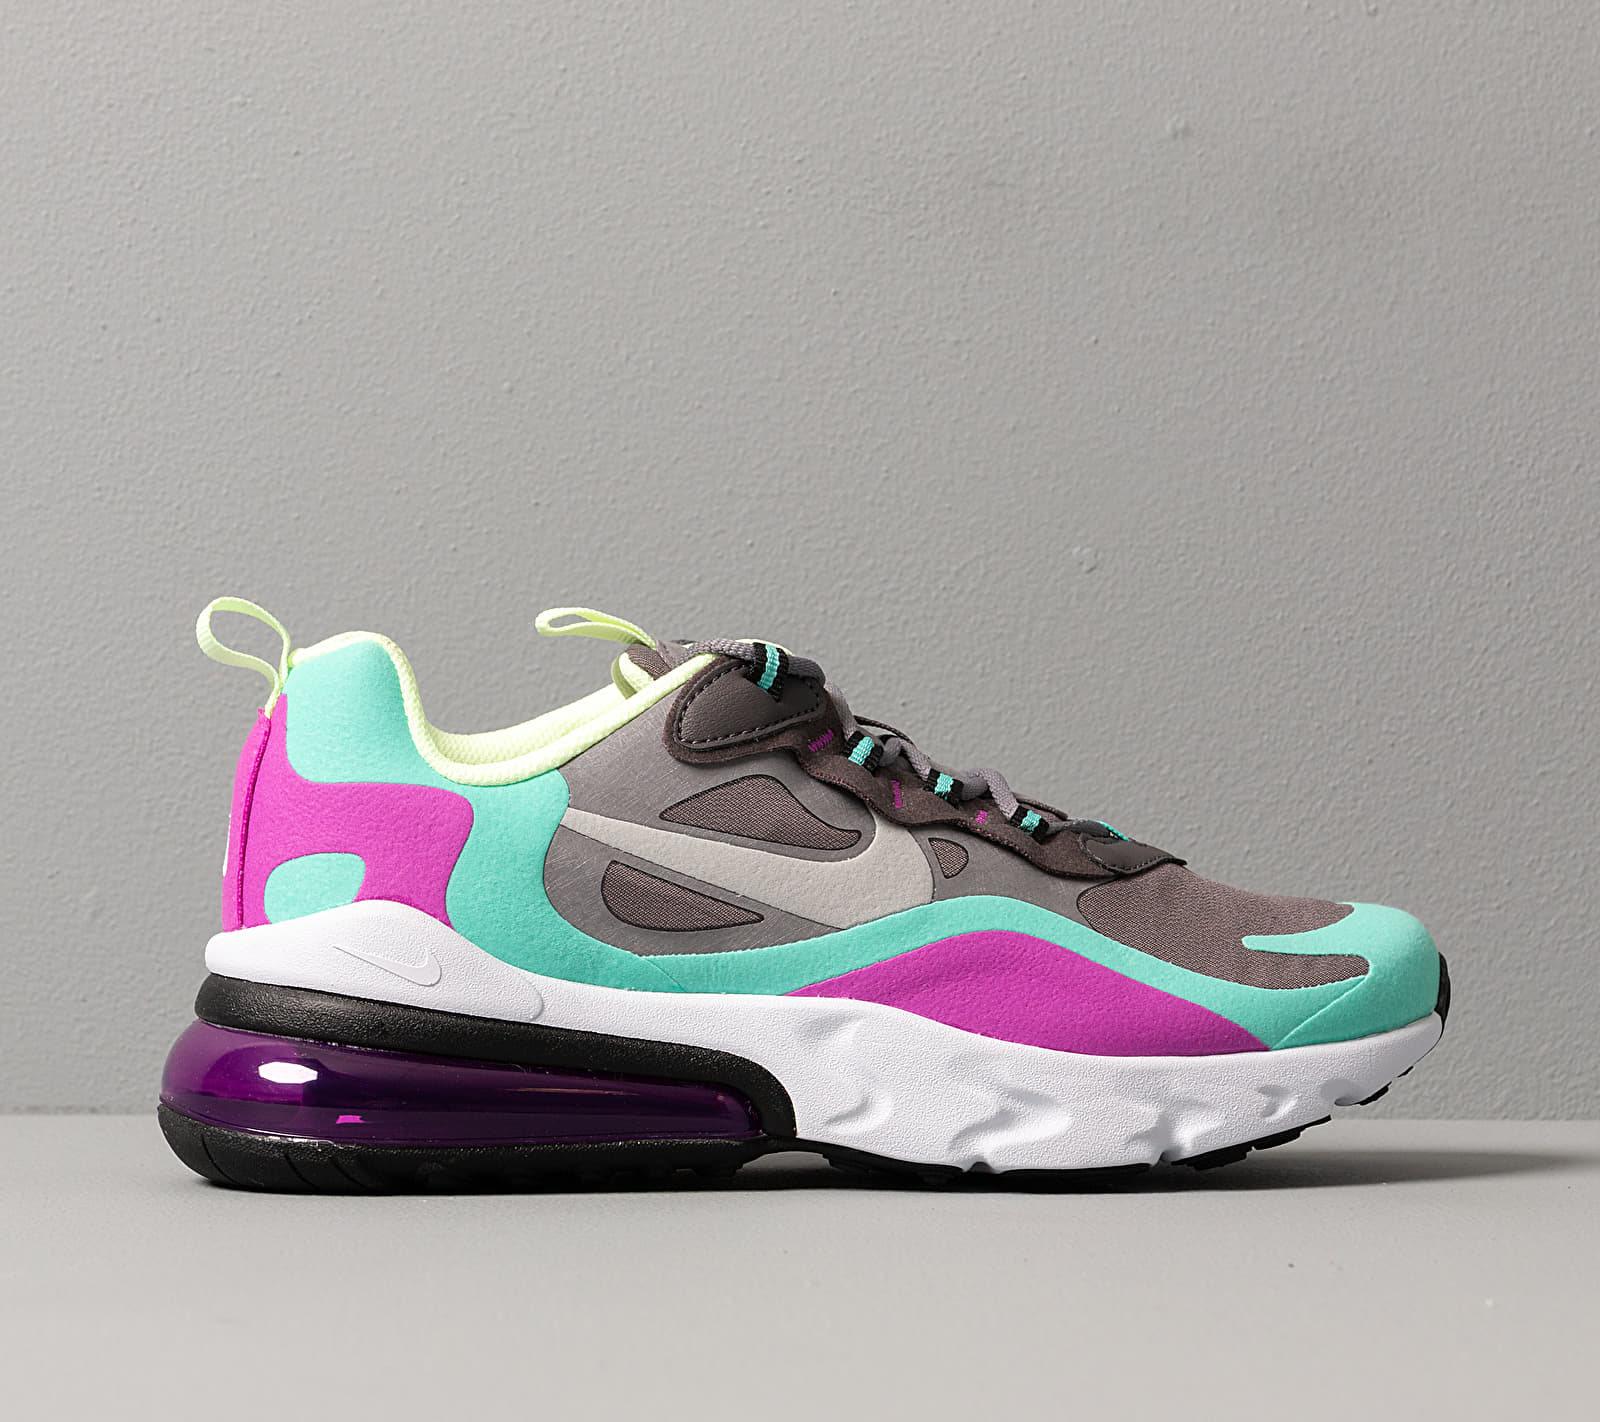 Nike Air Max 270 React (GS) Gunsmoke Reflect Silver Aurora